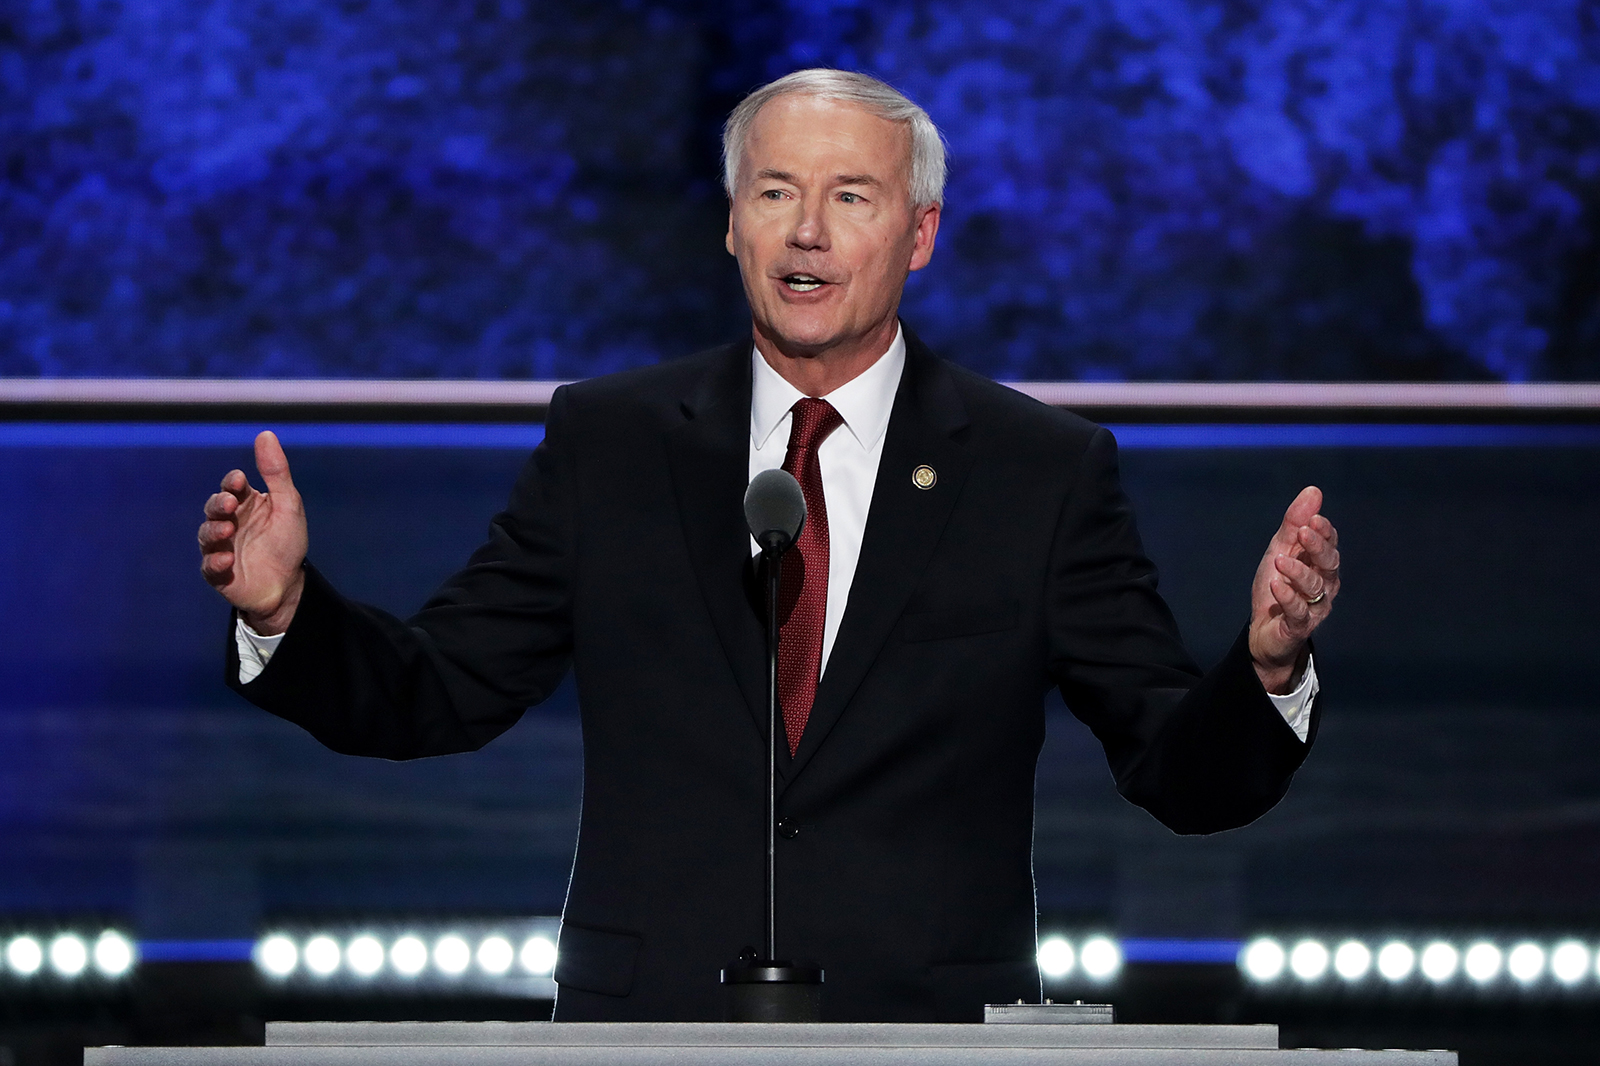 Arkansas Gov. Asa Hutchinson pictured at the Republican National Convention on July 19, 2016 in Cleveland, Ohio.